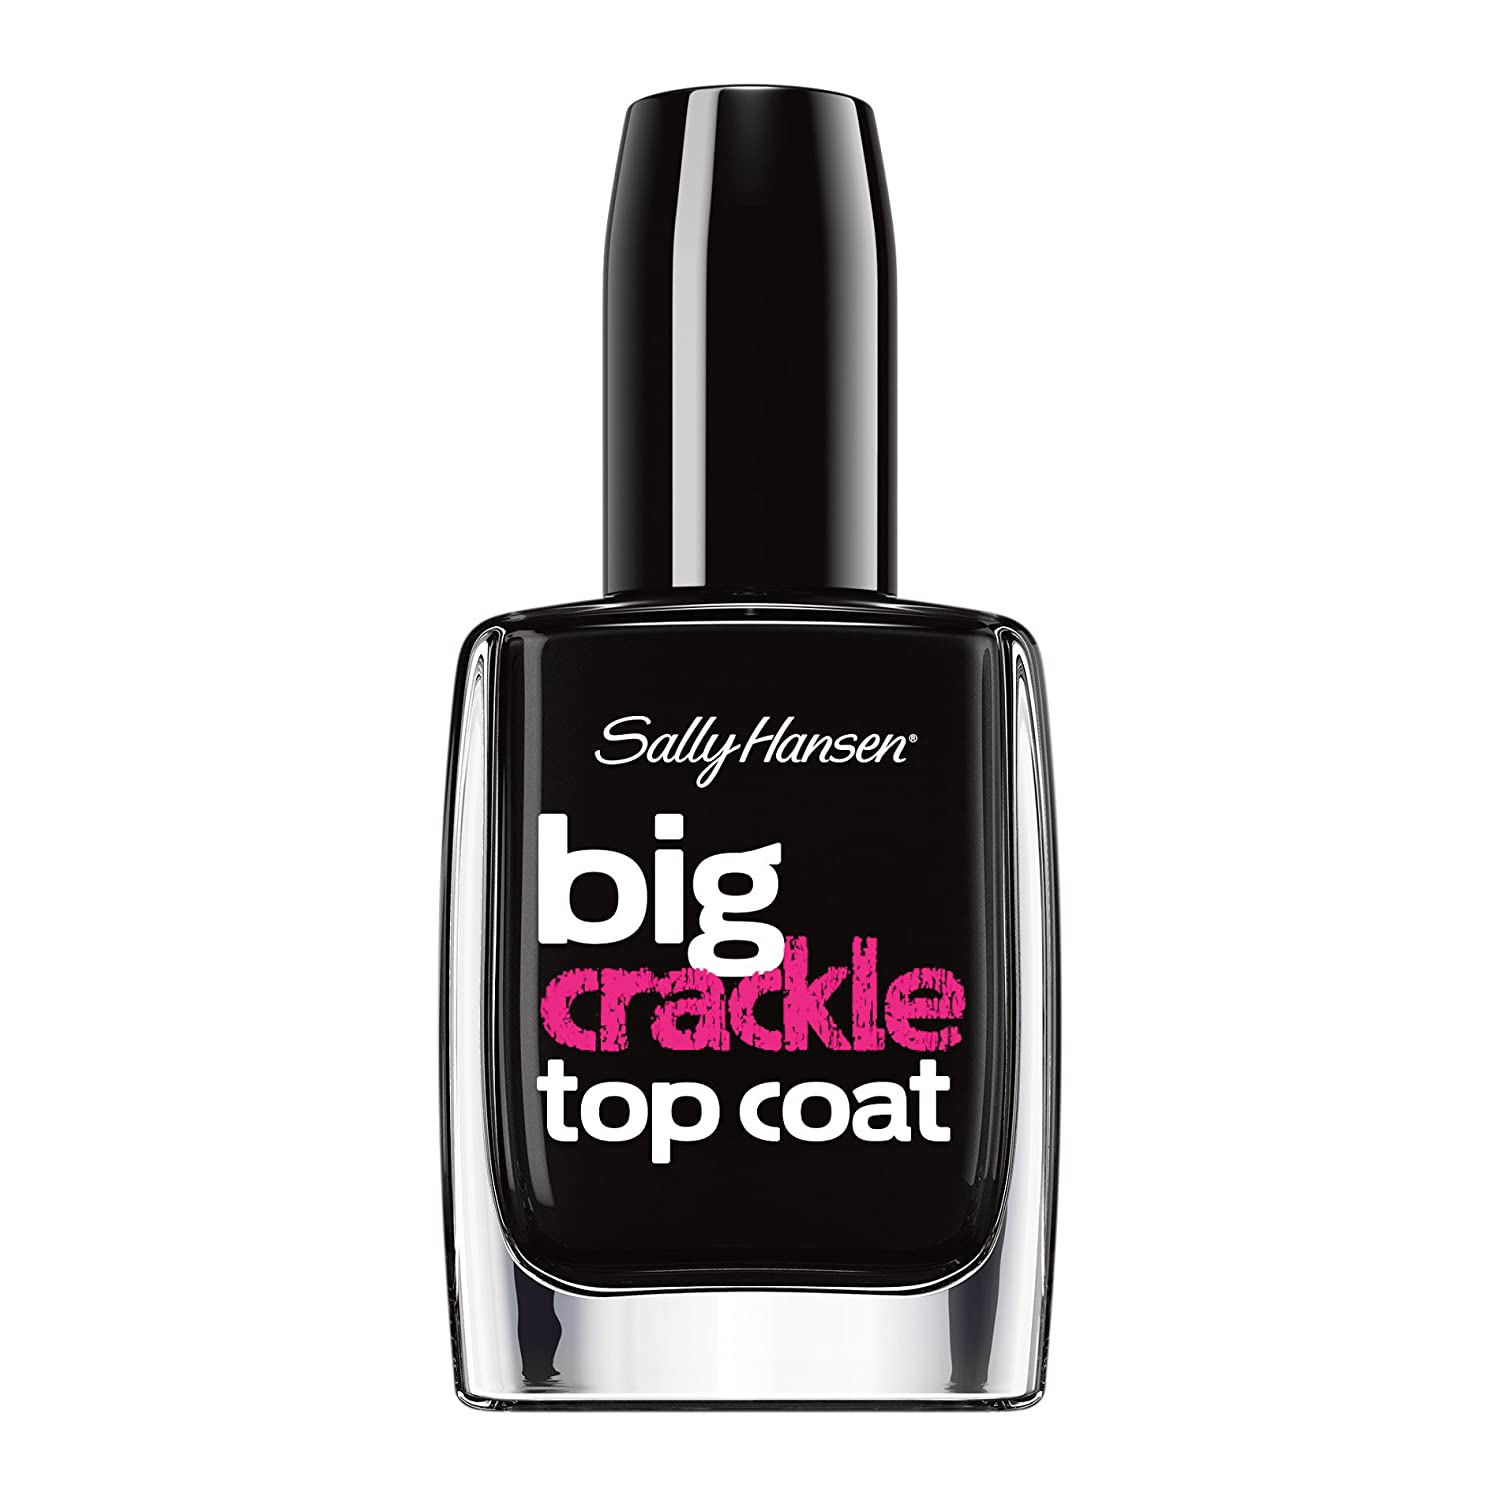 Sally Hansen - Big Crackle Top Coat Coty 30535742002